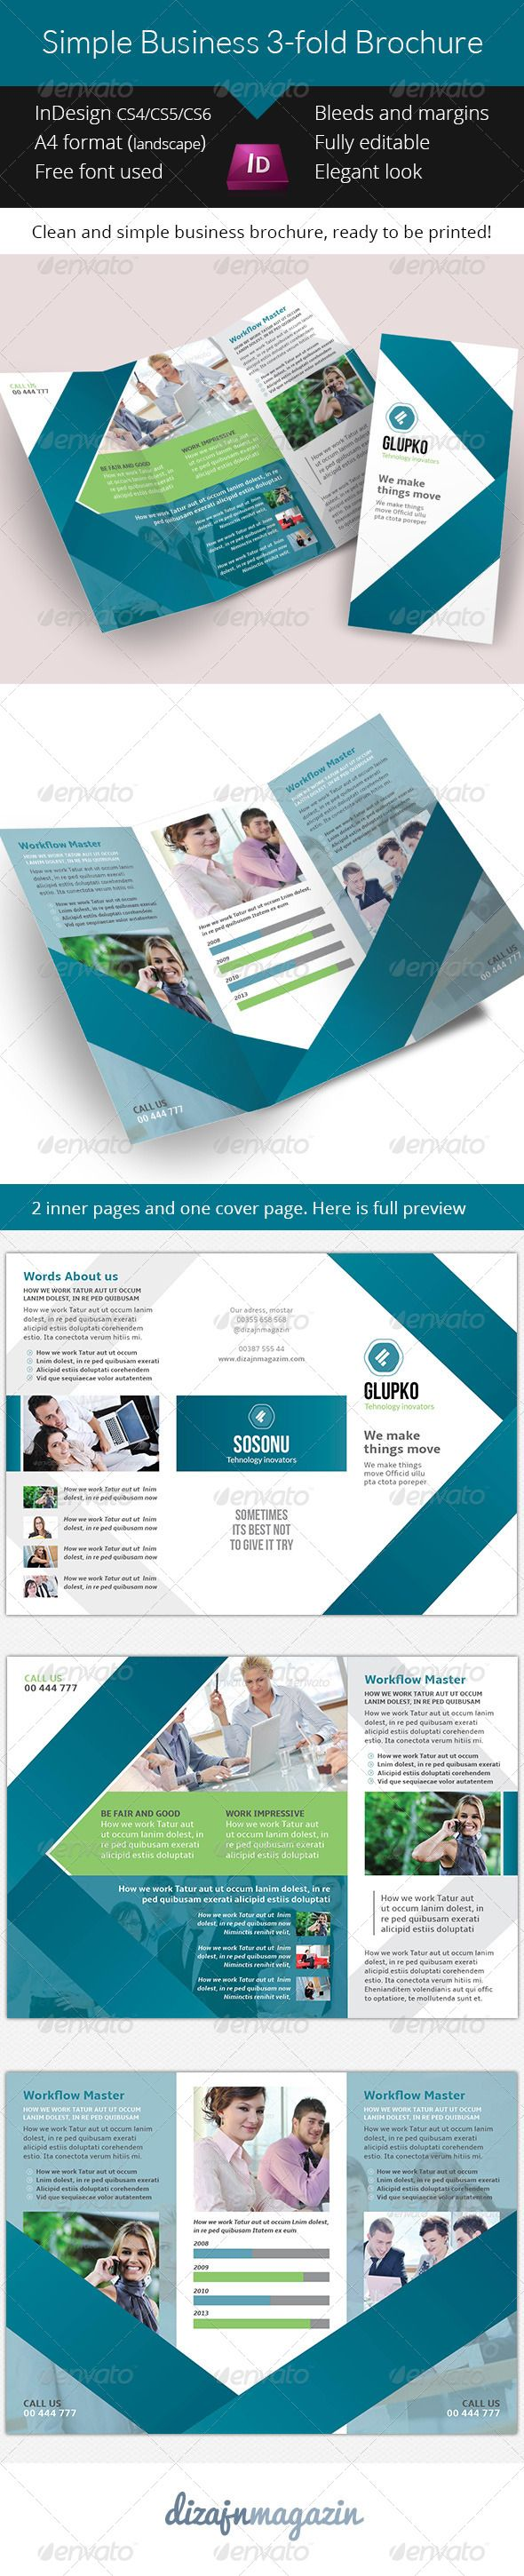 indesign free brochure templates - 17 best images about print templates on pinterest